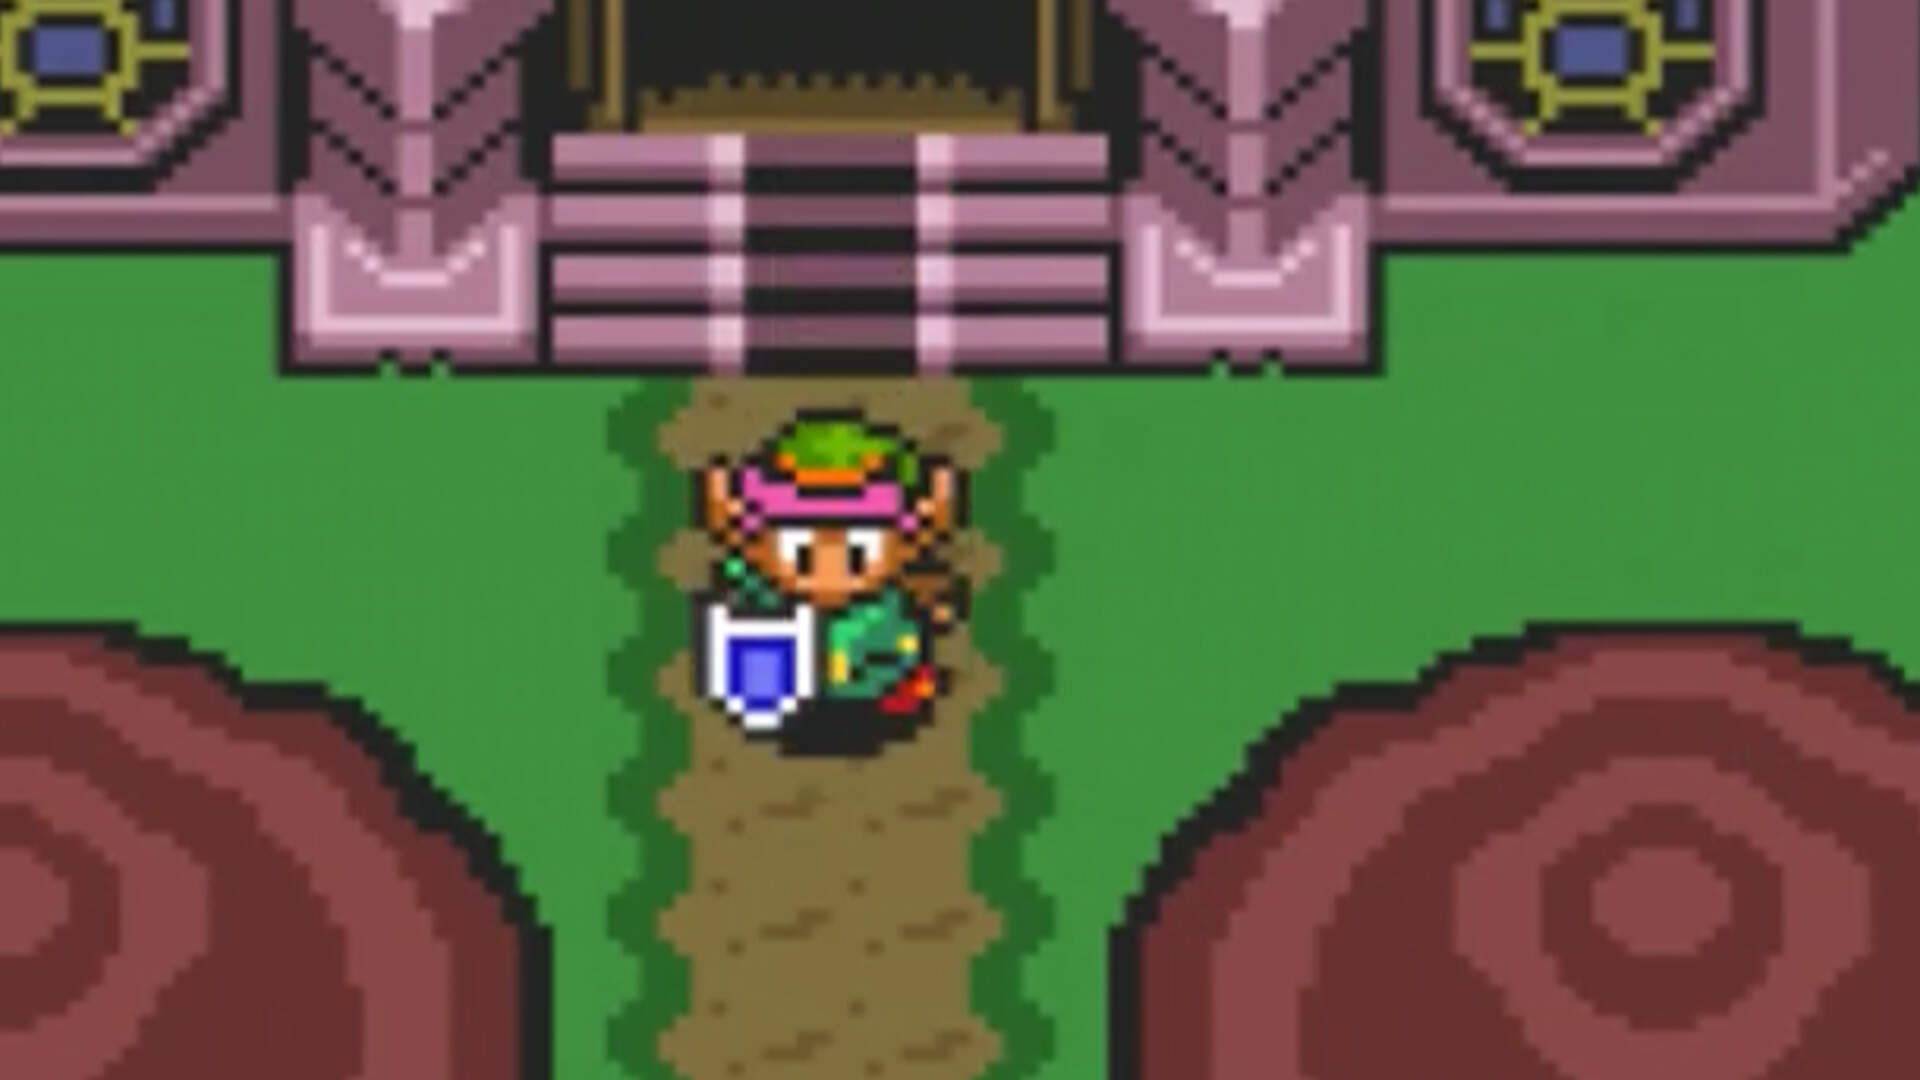 A Link to the Past Deep Dive, Part 2: A Prologue That Spanned the World